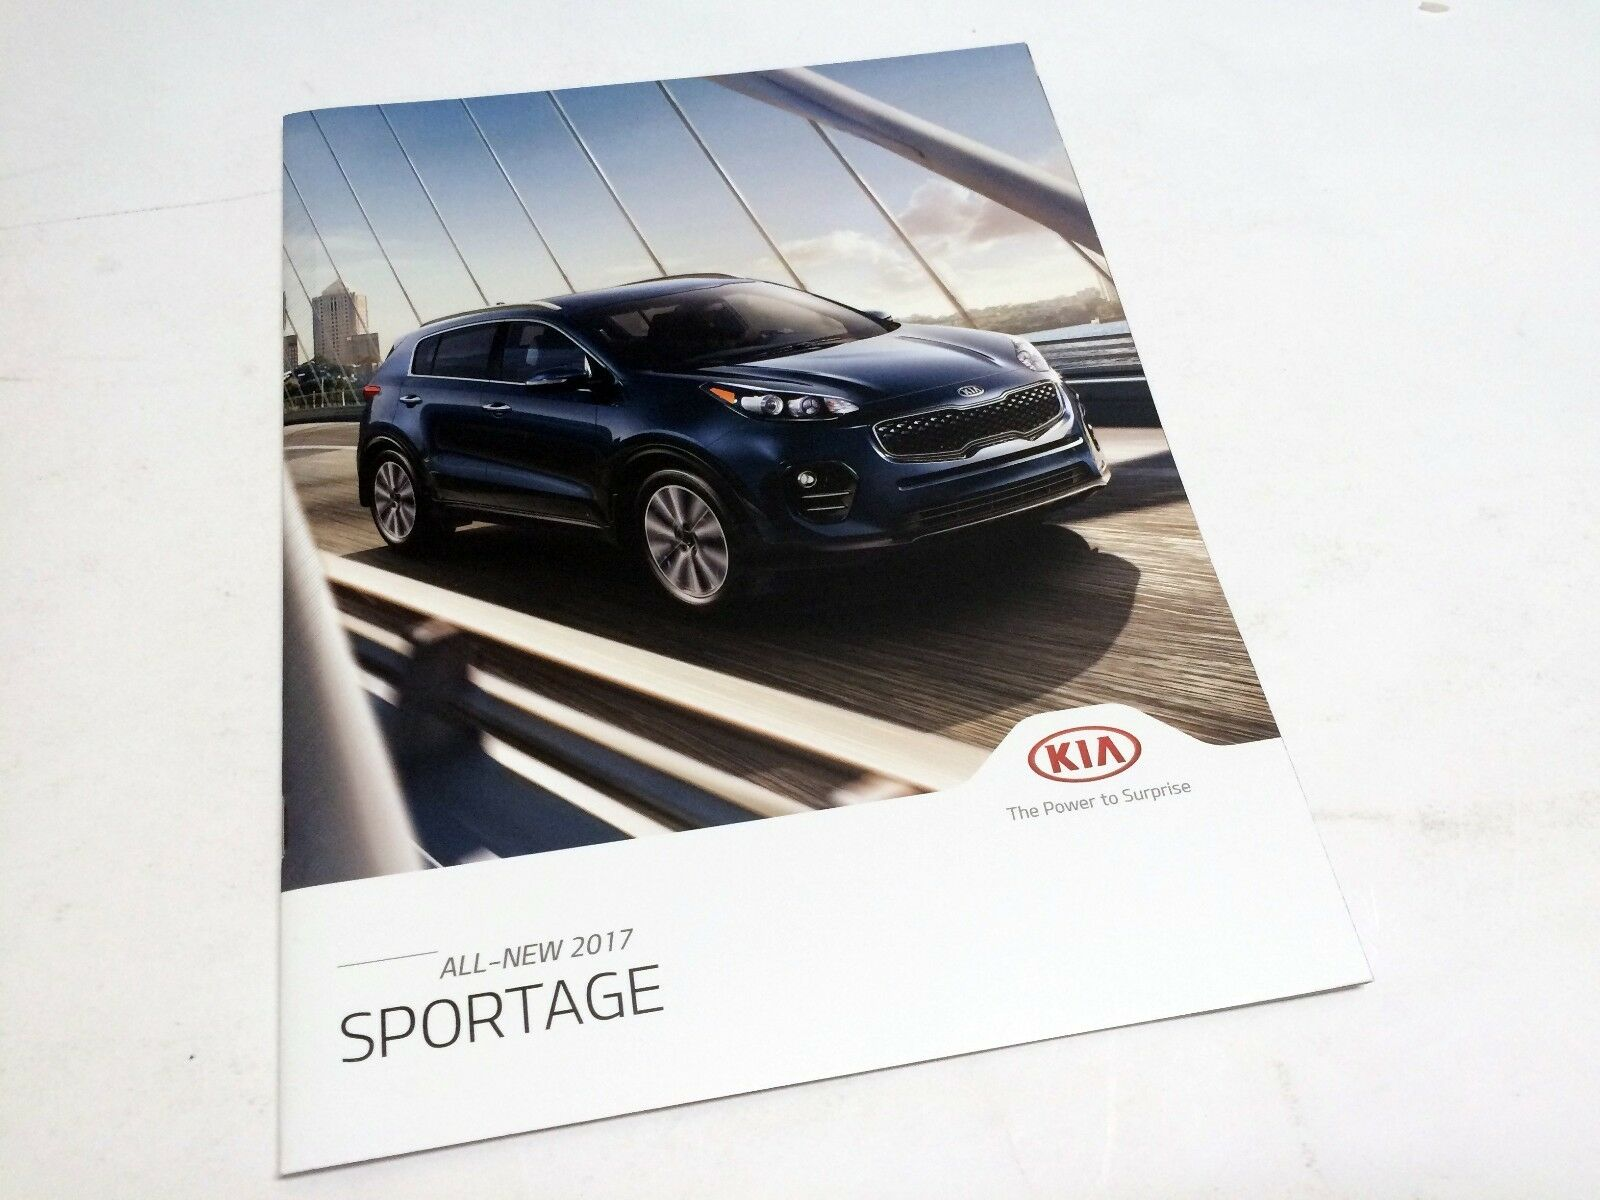 2017 Kia Sportage Brochure 1 of 1Only 1 available ...